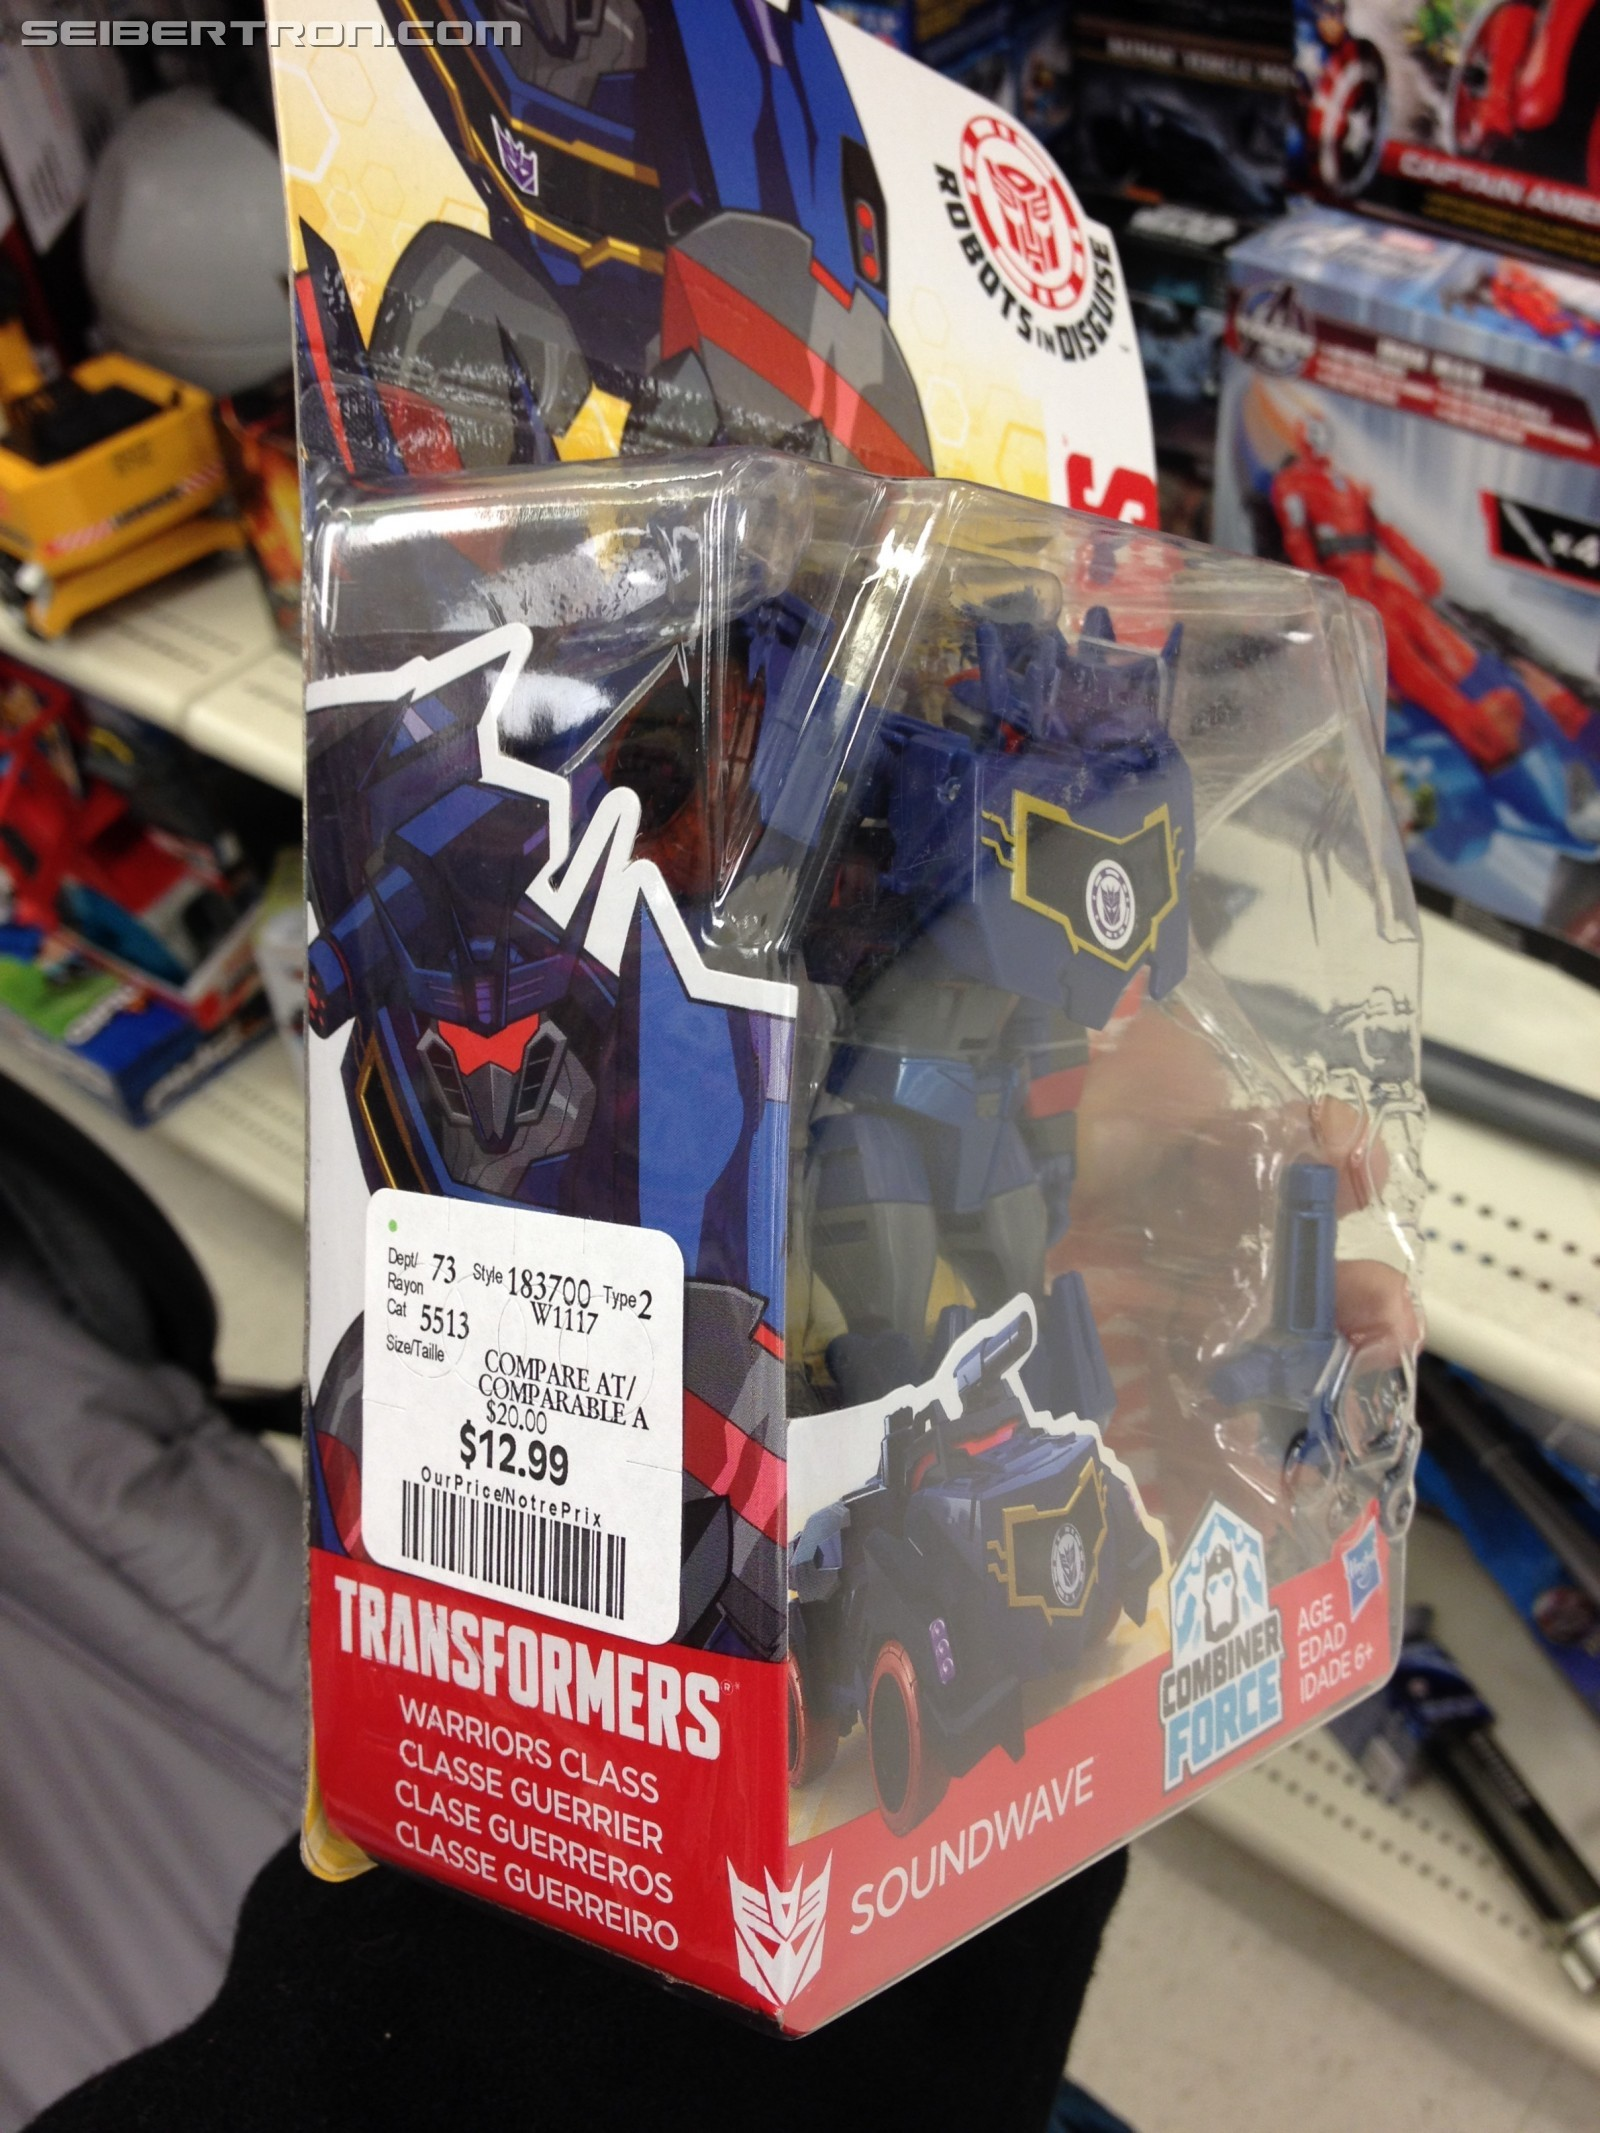 Transformers News: New Canadian Transformers Sightings including Holiday Restock at Winners and Fidget Its at Dollarama